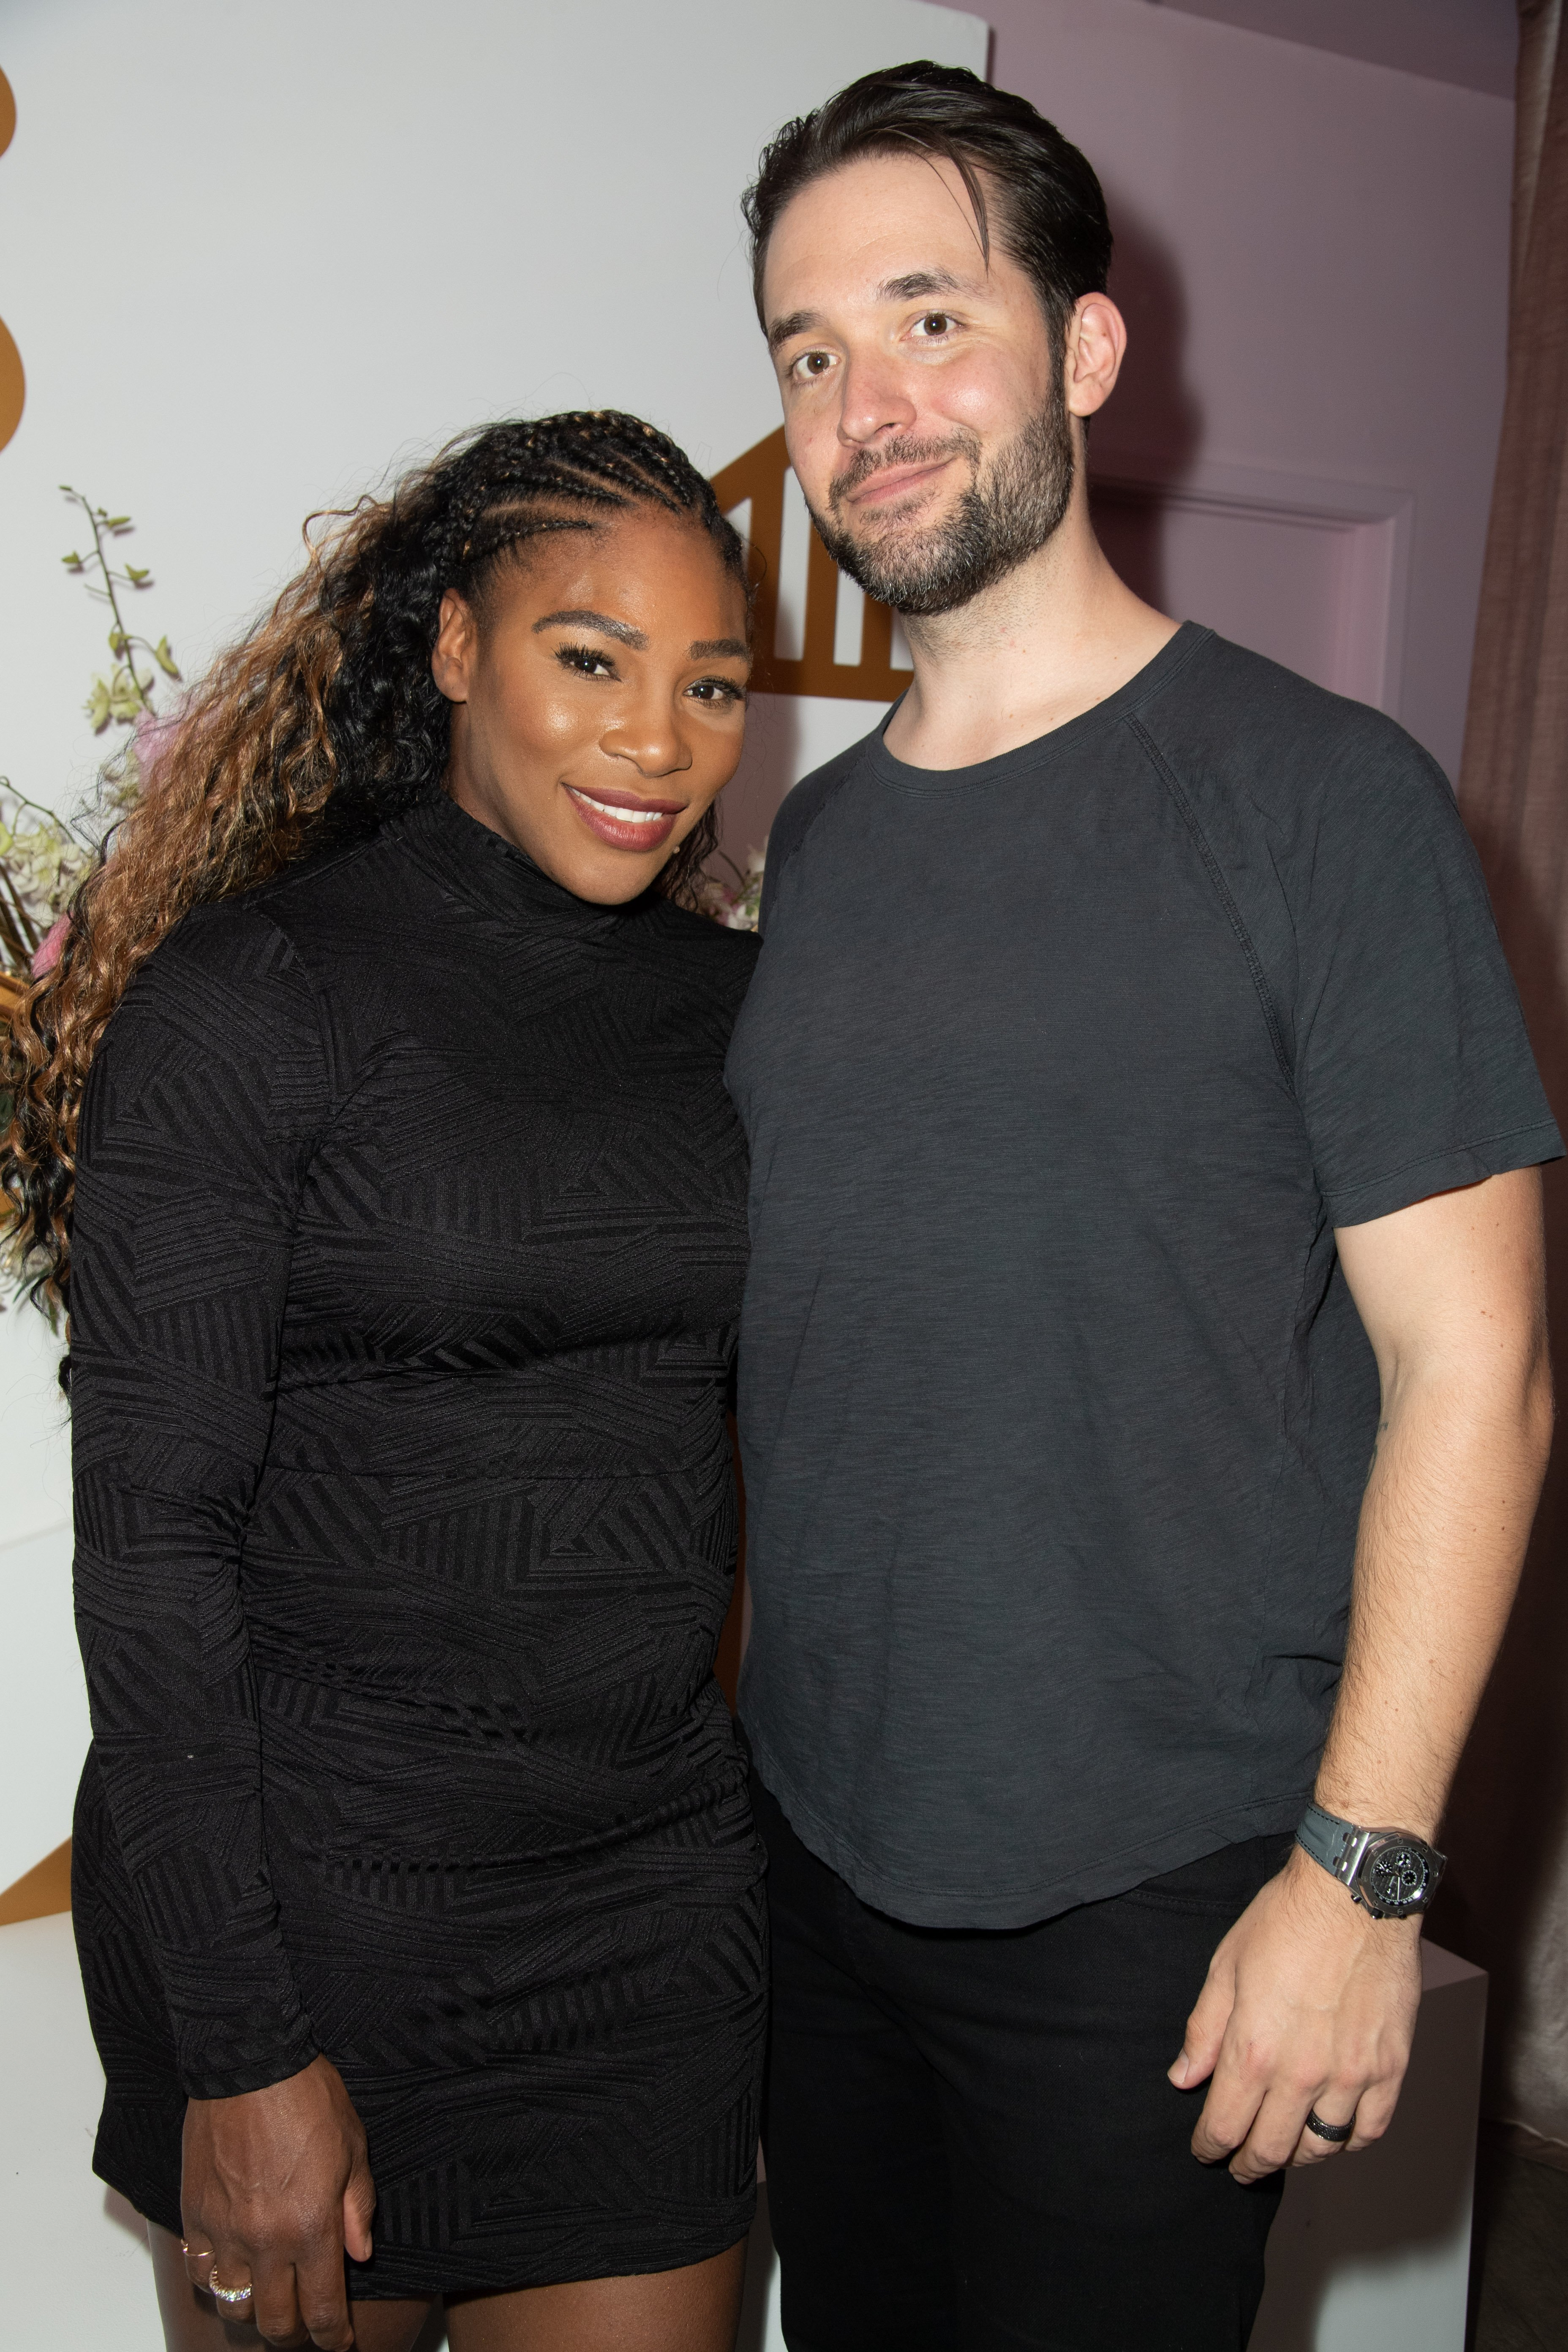 Serena Williams and husband Alexis Ohanian attend The Serena Collection Pop-Up VIP Reception at Melody Eshani on November 30, 2018 | Photo: GettyImages